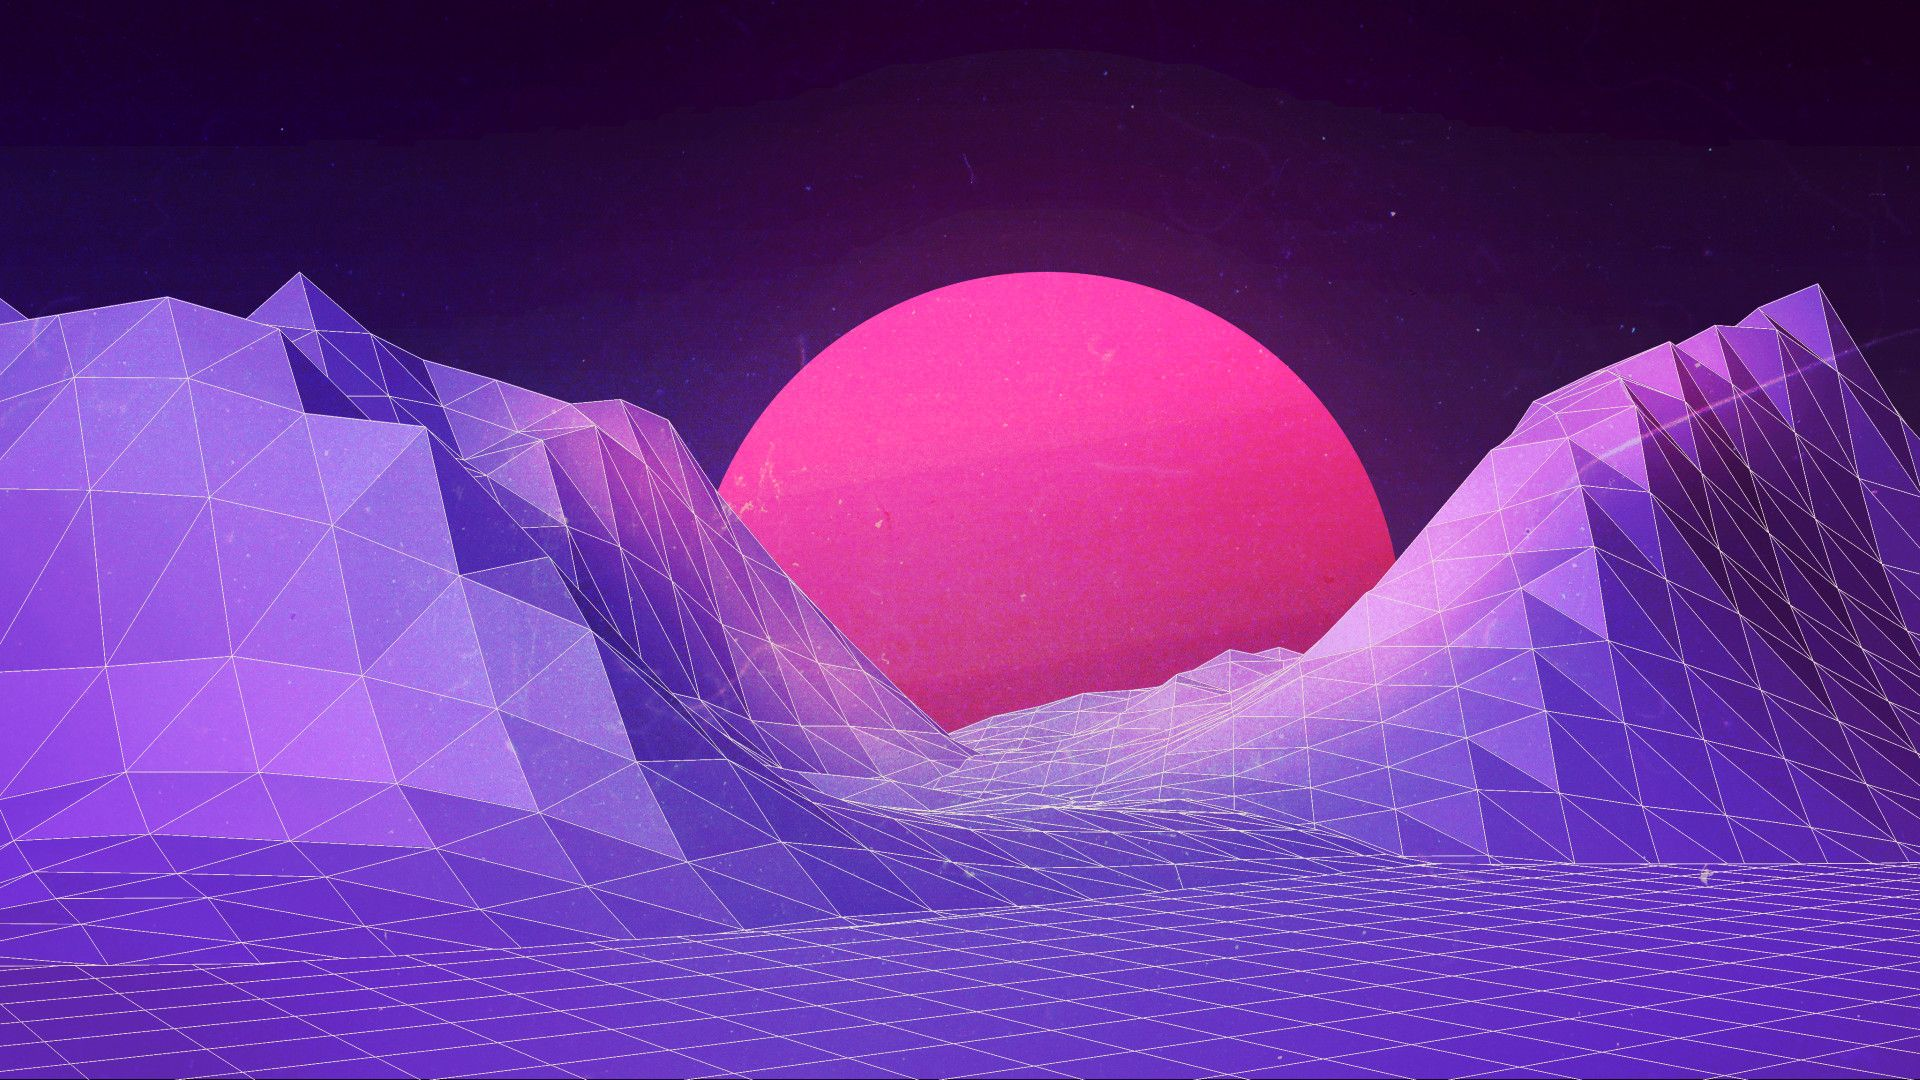 1920x1080 Aesthetic Vaporwave Wallpapers High Definition